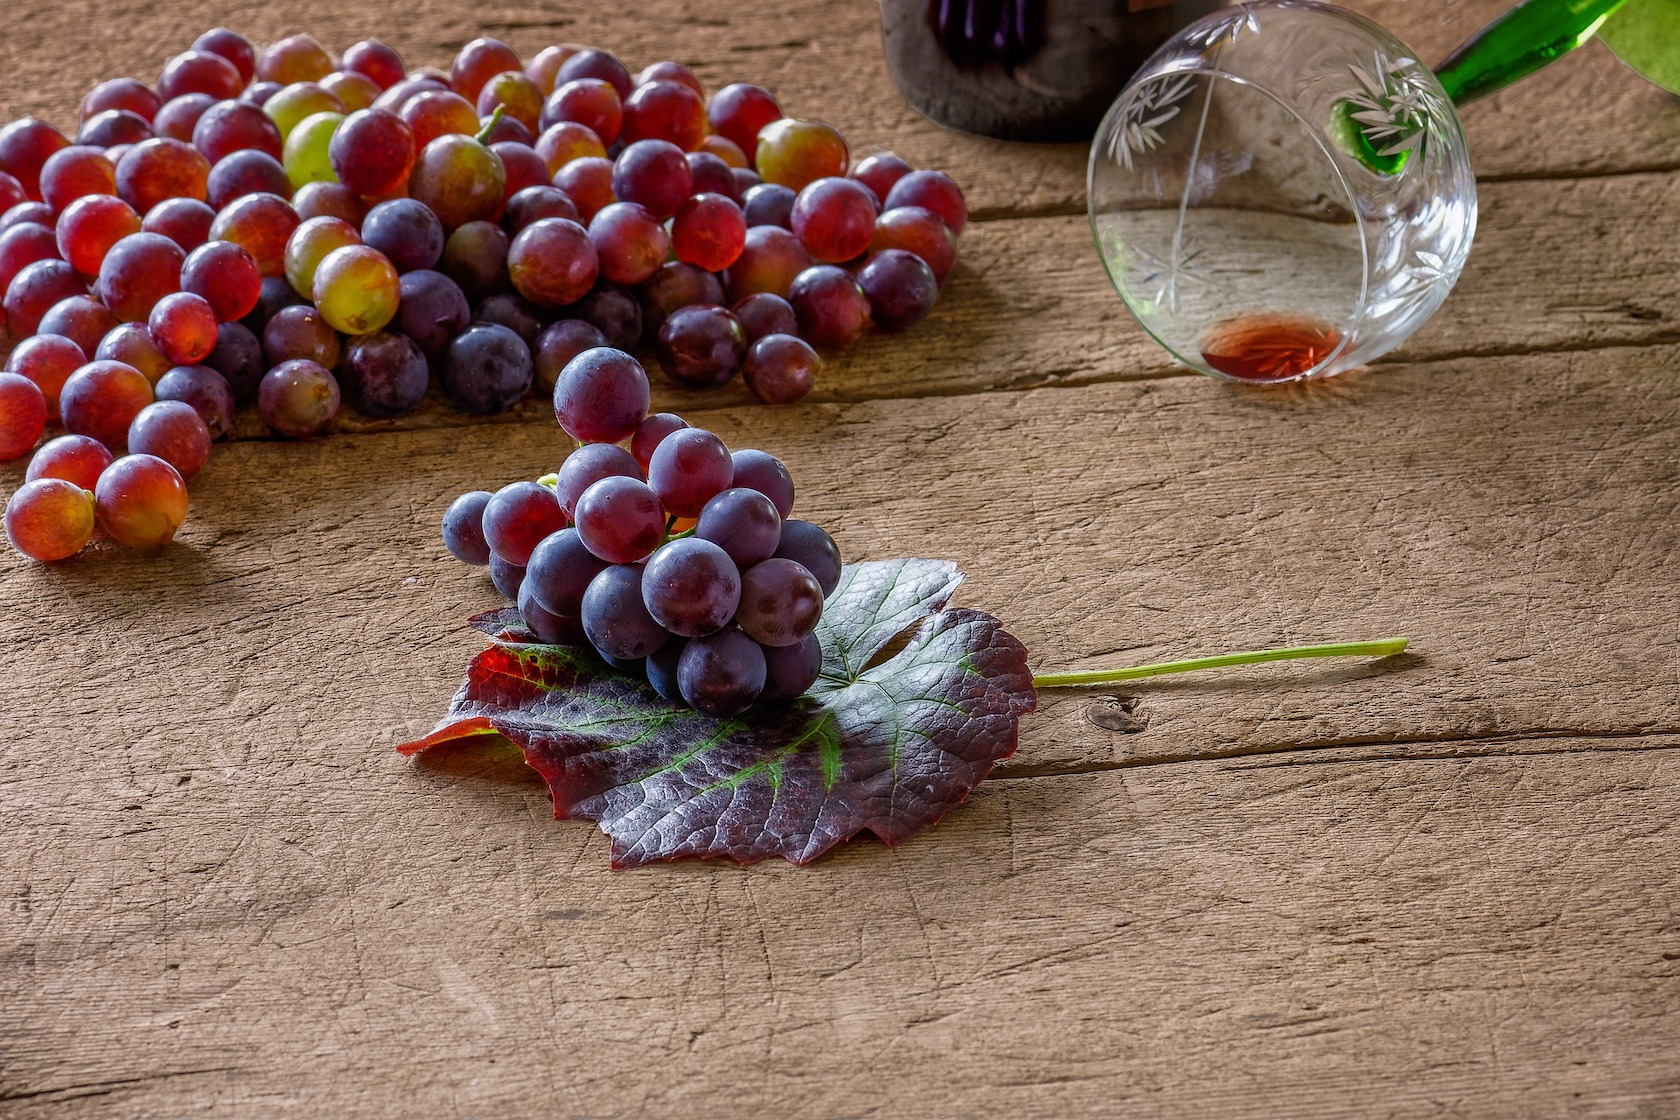 Red grapes on a wooden table. Guests can sample wine from the Cretan vineyard.